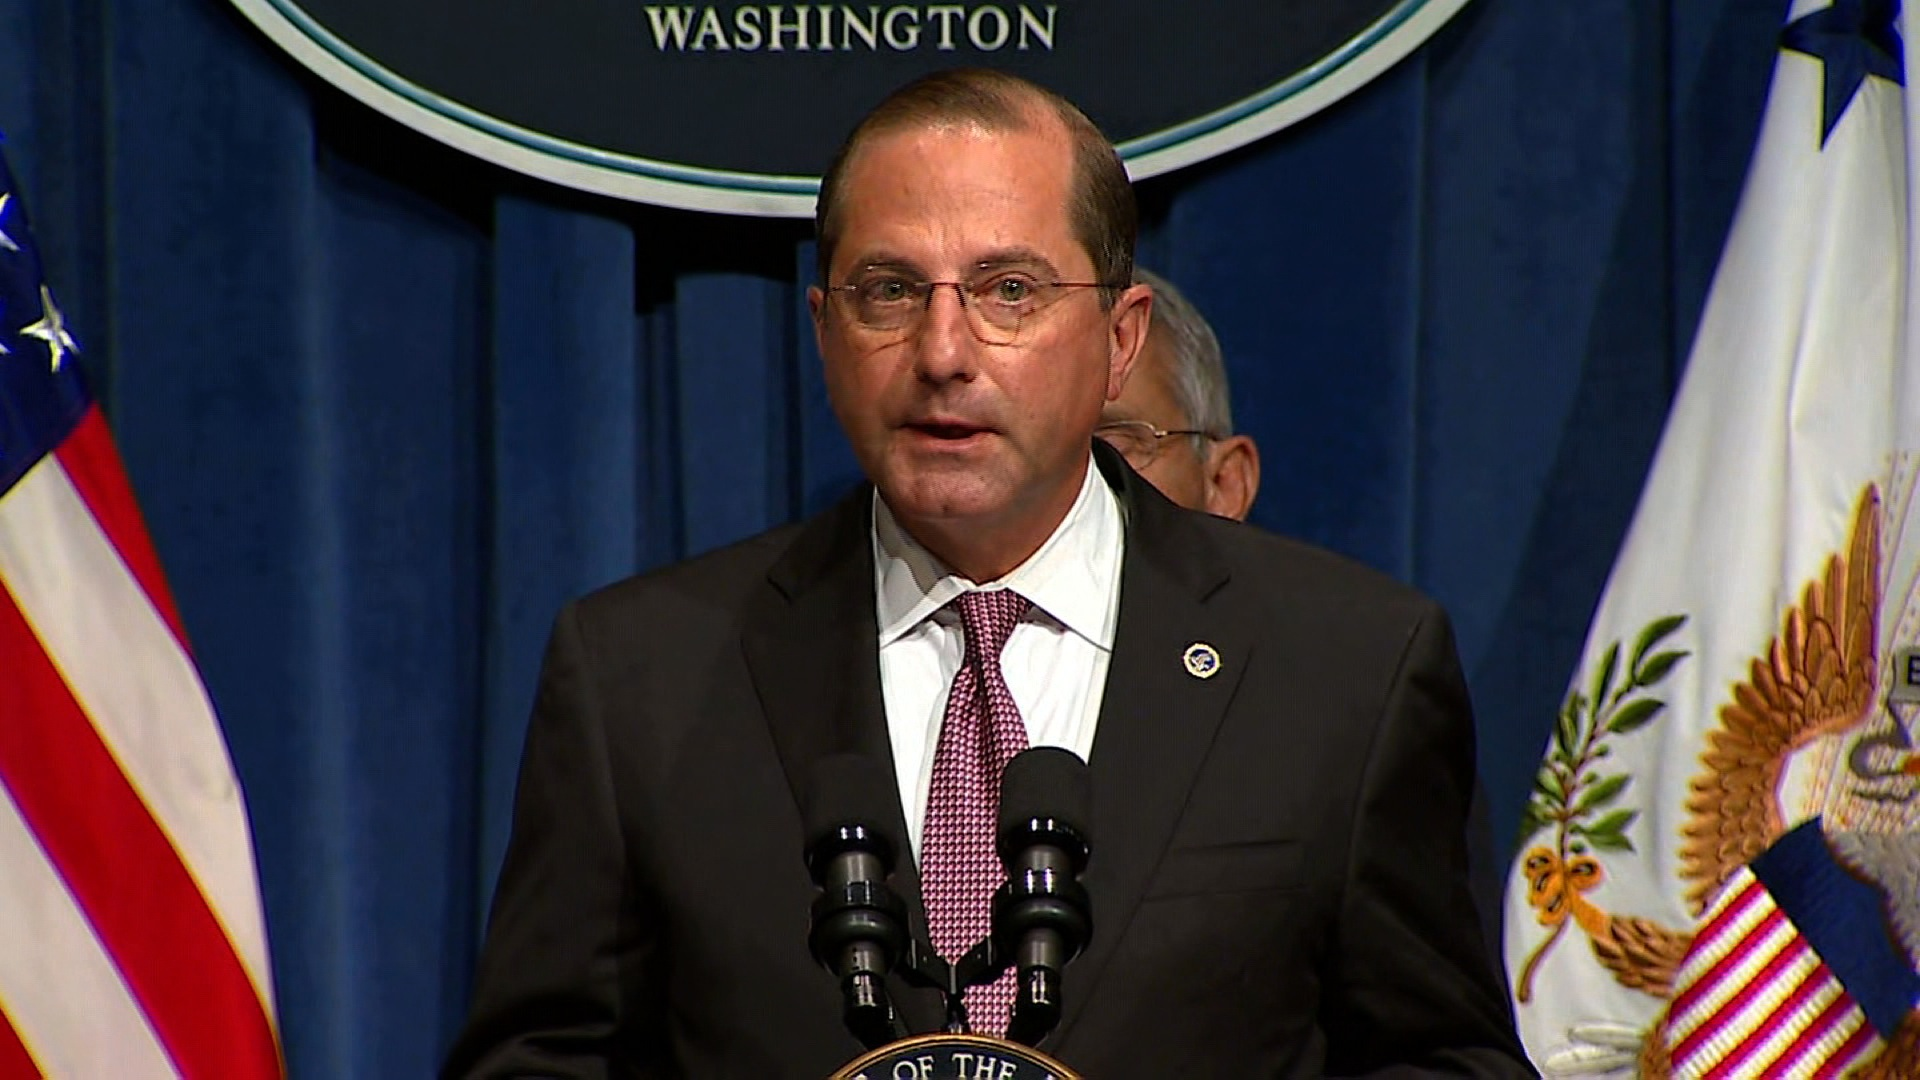 Health and Human Services Secretary Alex Azar speaks at the coronavirus task force meeting in Washington, DC on June 26.